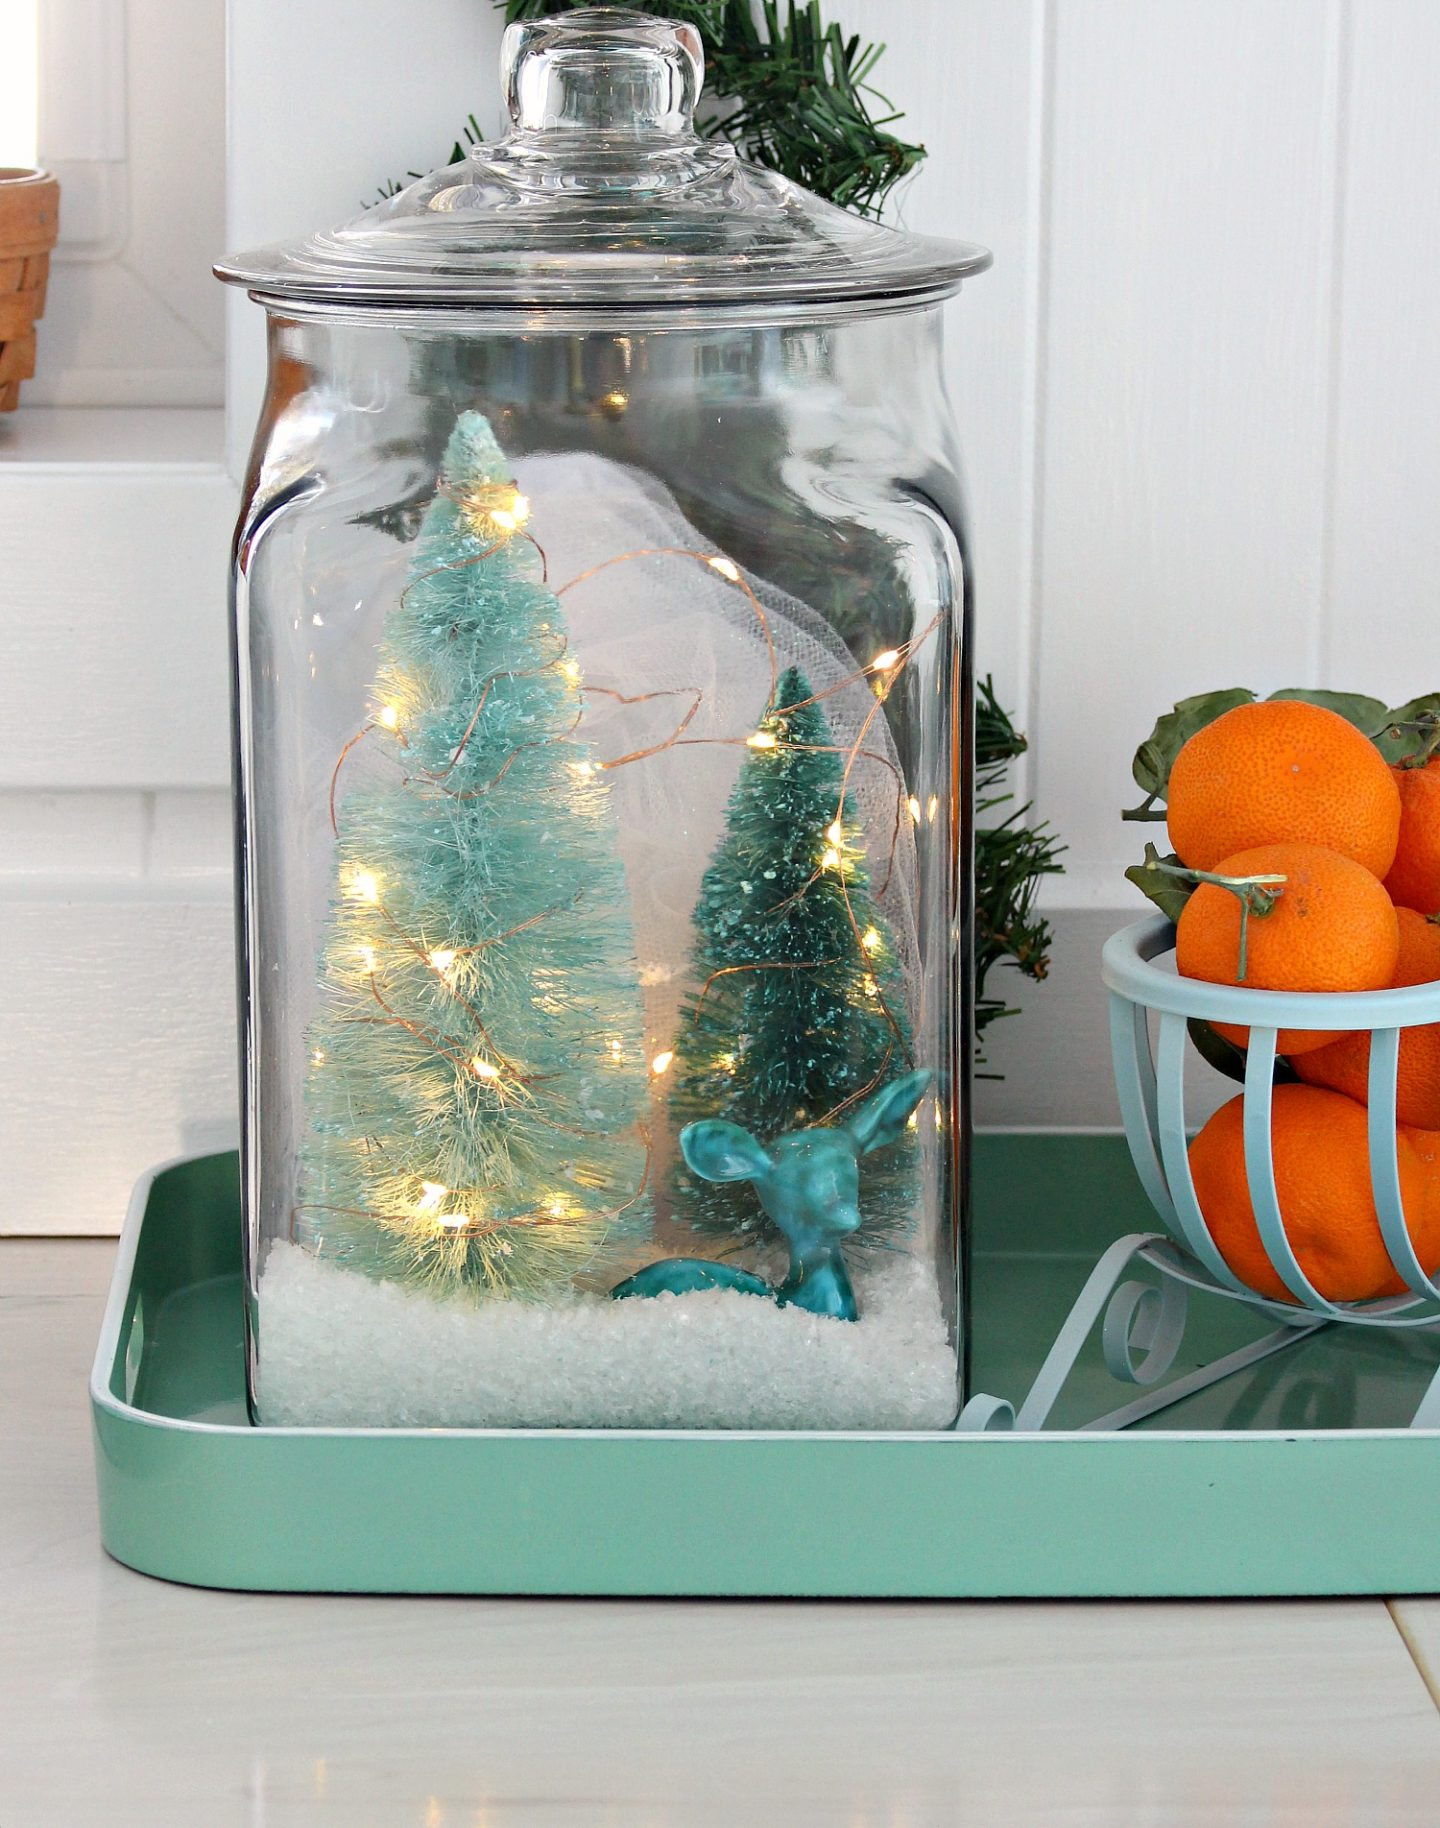 Diy Glass Jar Winter Scene Upcycled Holiday Decor Dans